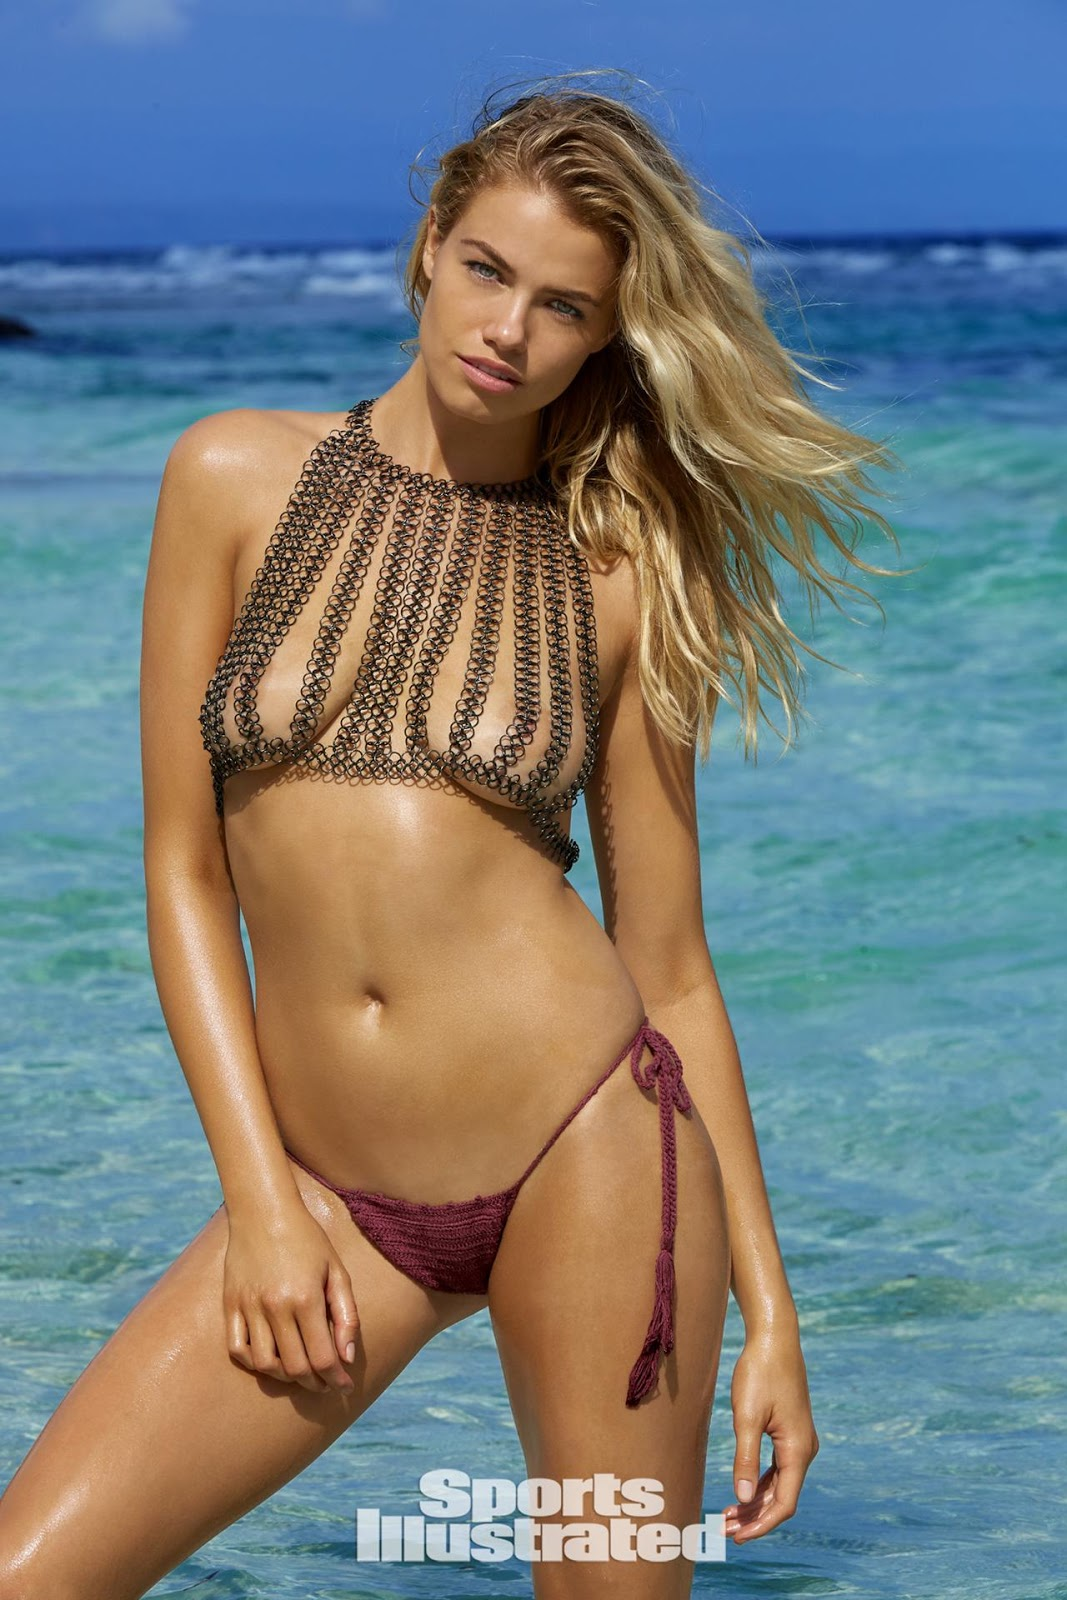 Hailey Clauson - Sports Illustrated Swimsuit Issue 2017